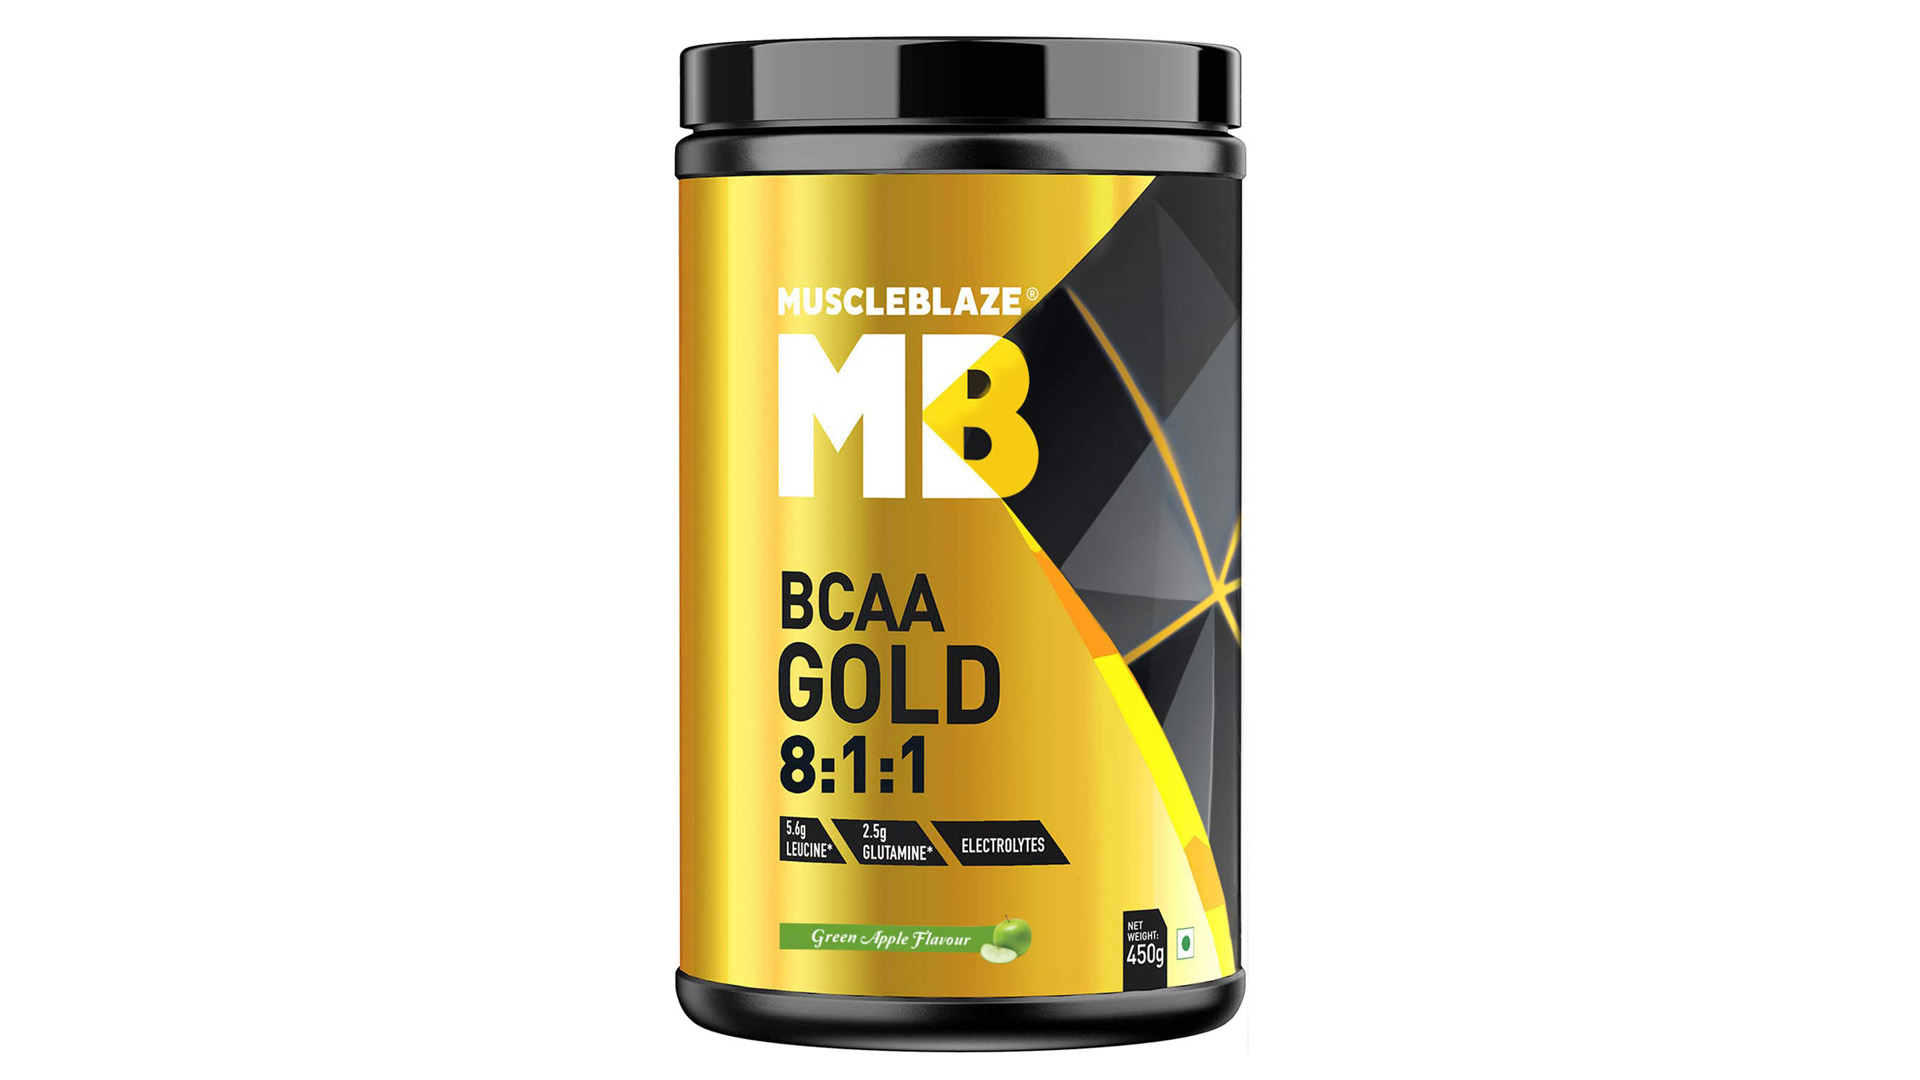 MuscleBlaze BCAA Gold 811